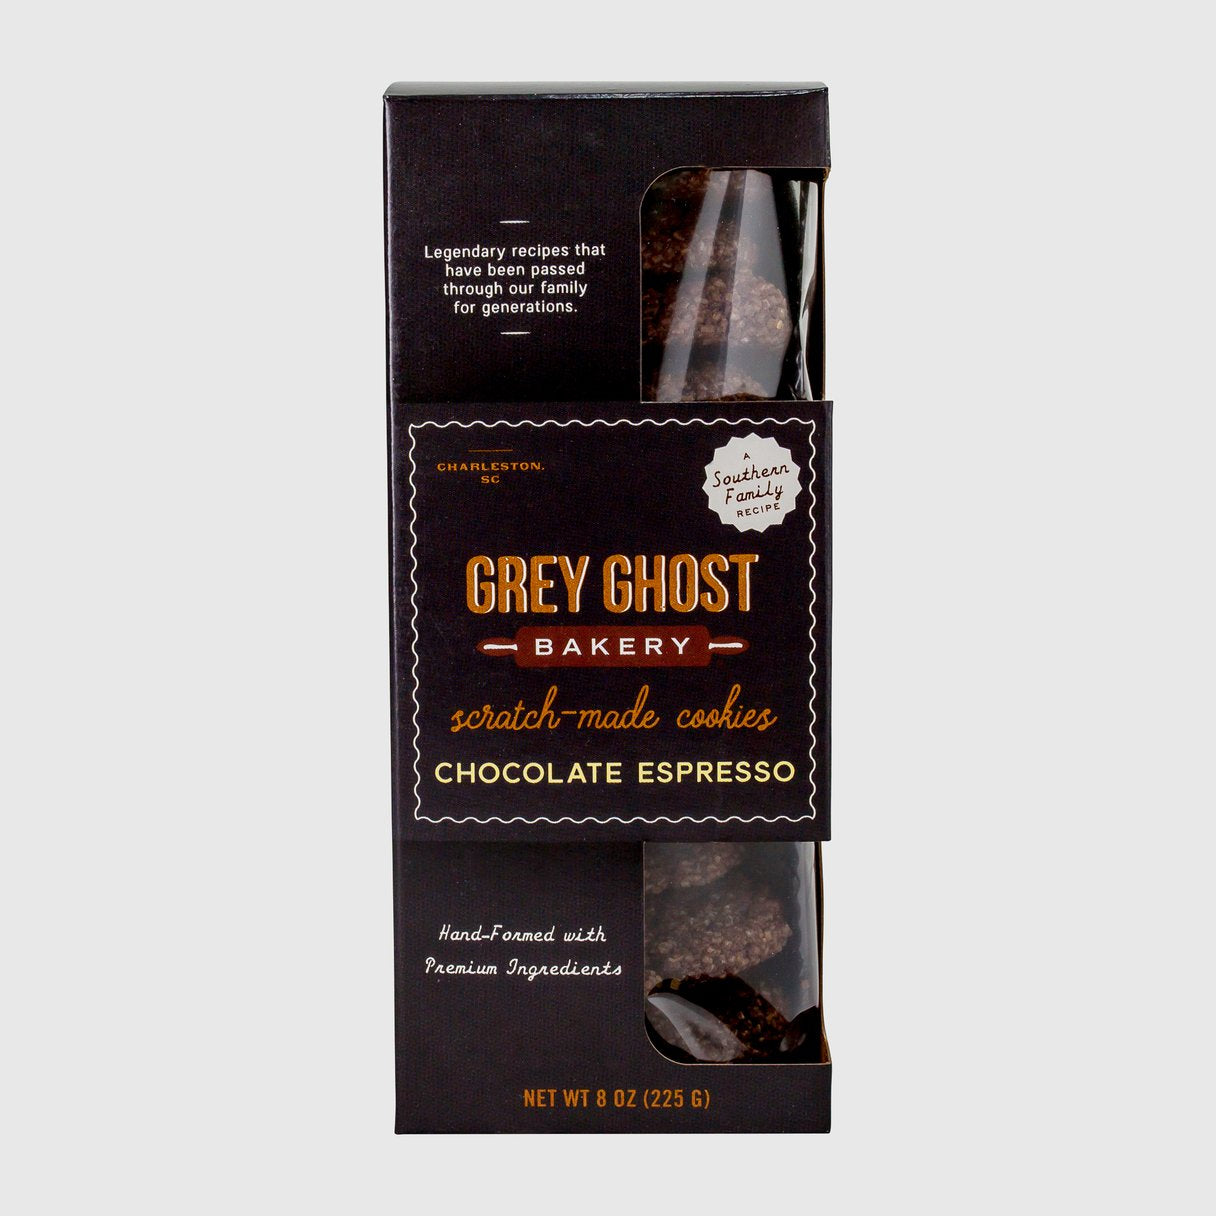 Grey Ghost Bakery Chocolate Espresso Cookies